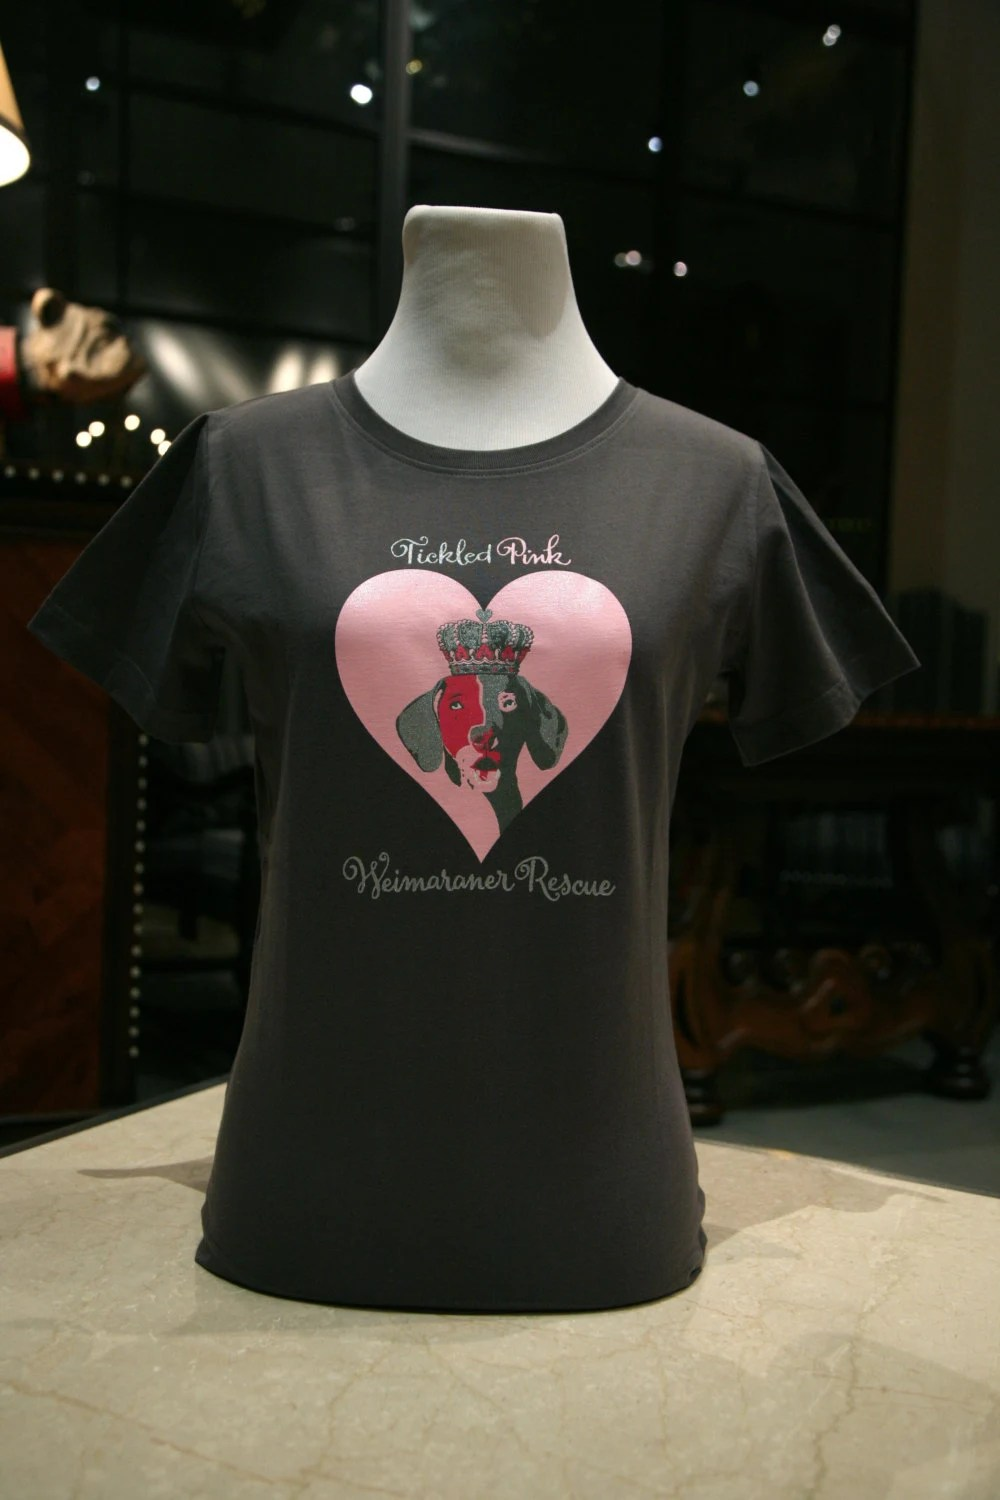 Charcoal Gray Weimaraner T-Shirt to Support Rescue